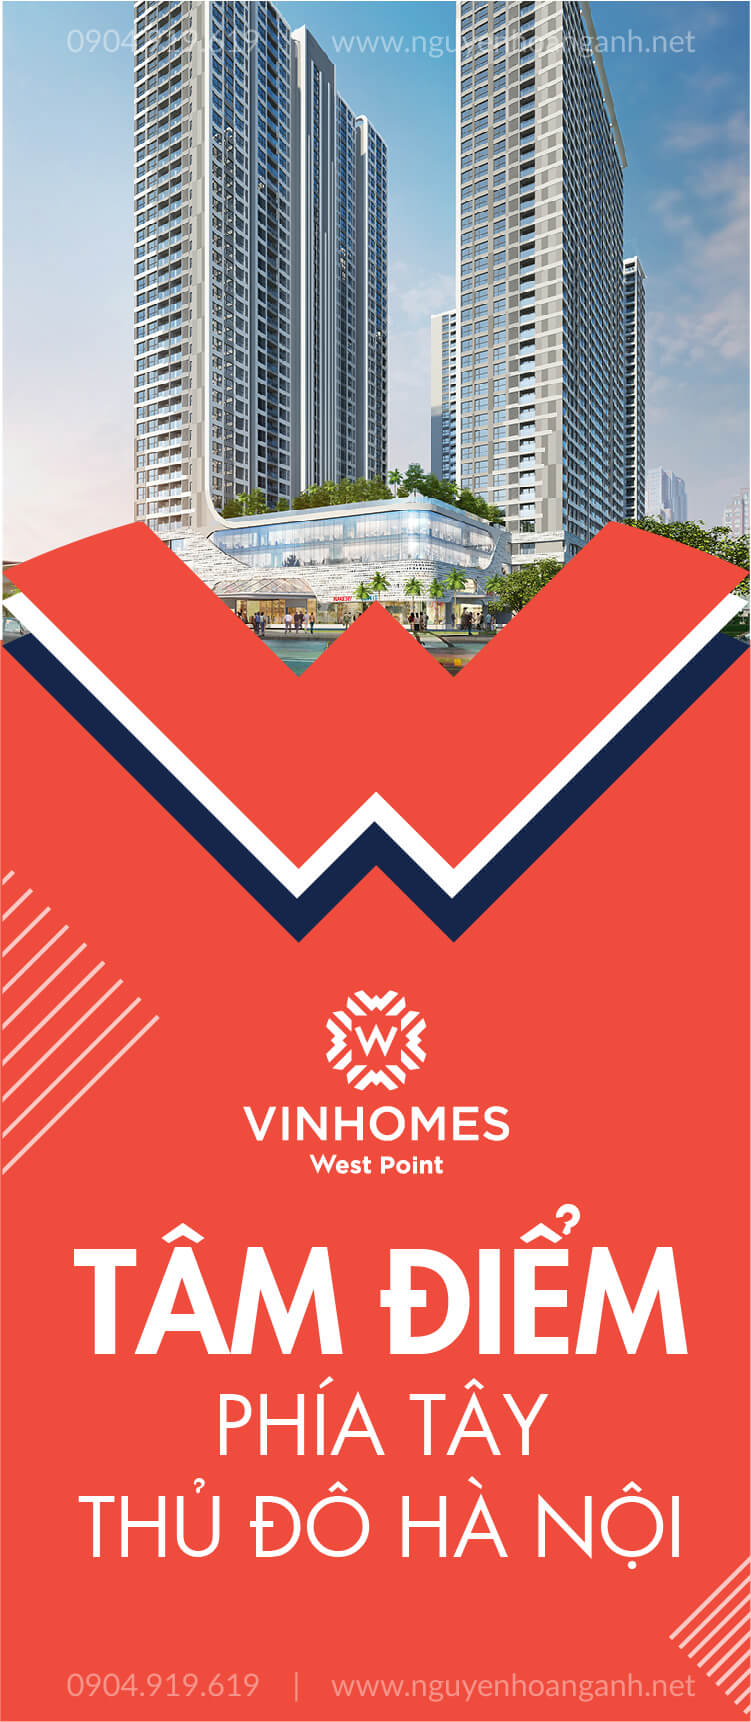 vinhomes-west-point-tam-diem-phia-tay-sidebar